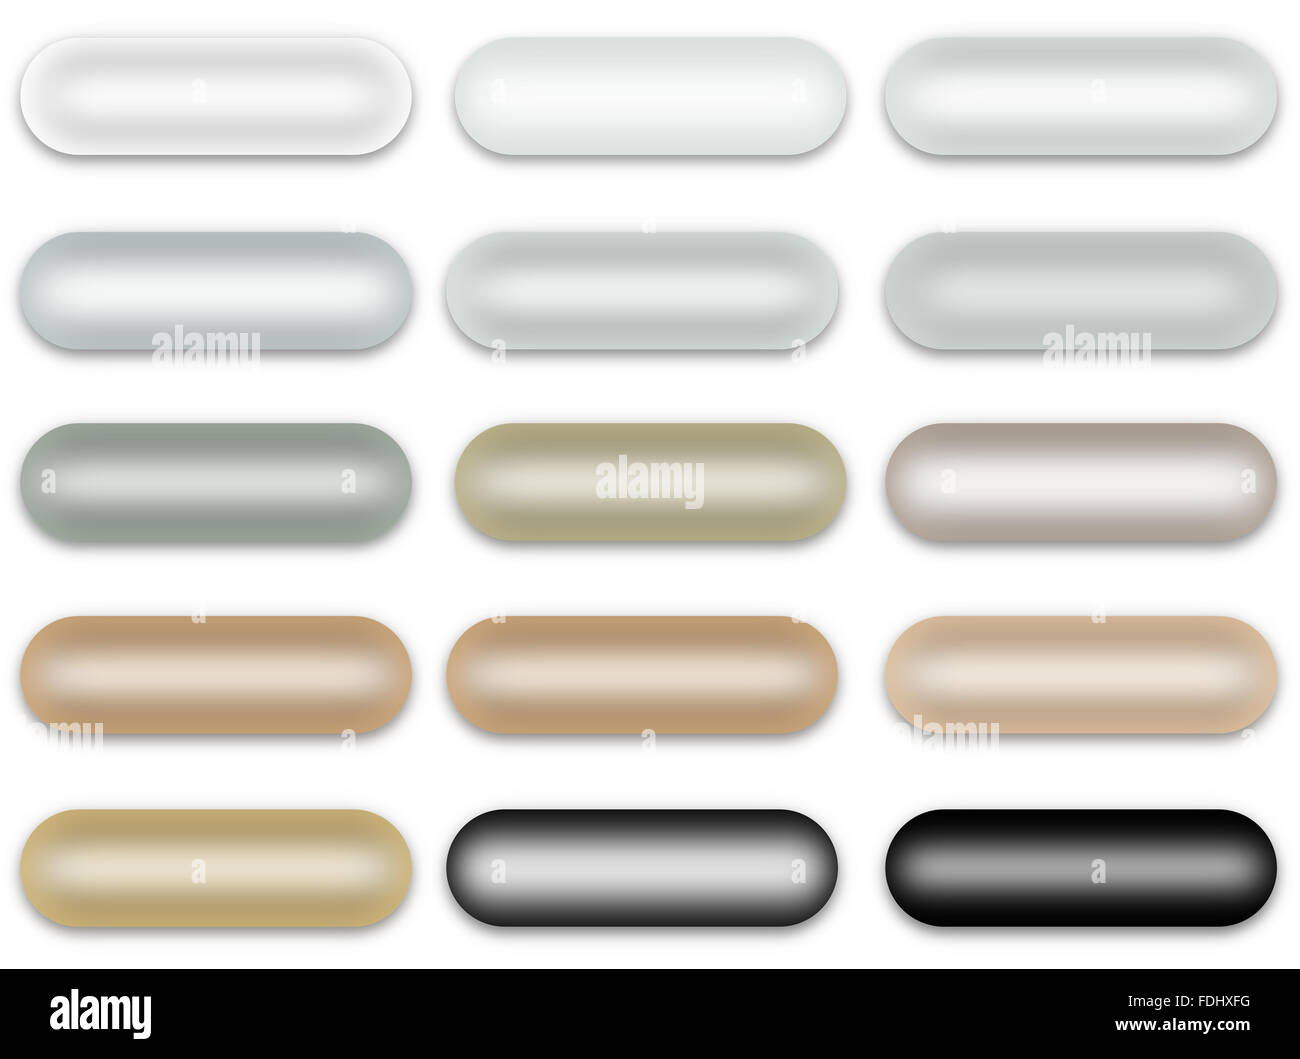 Rounded Rectangle Pearl Buttons Set Isolated on White Background - Stock Image